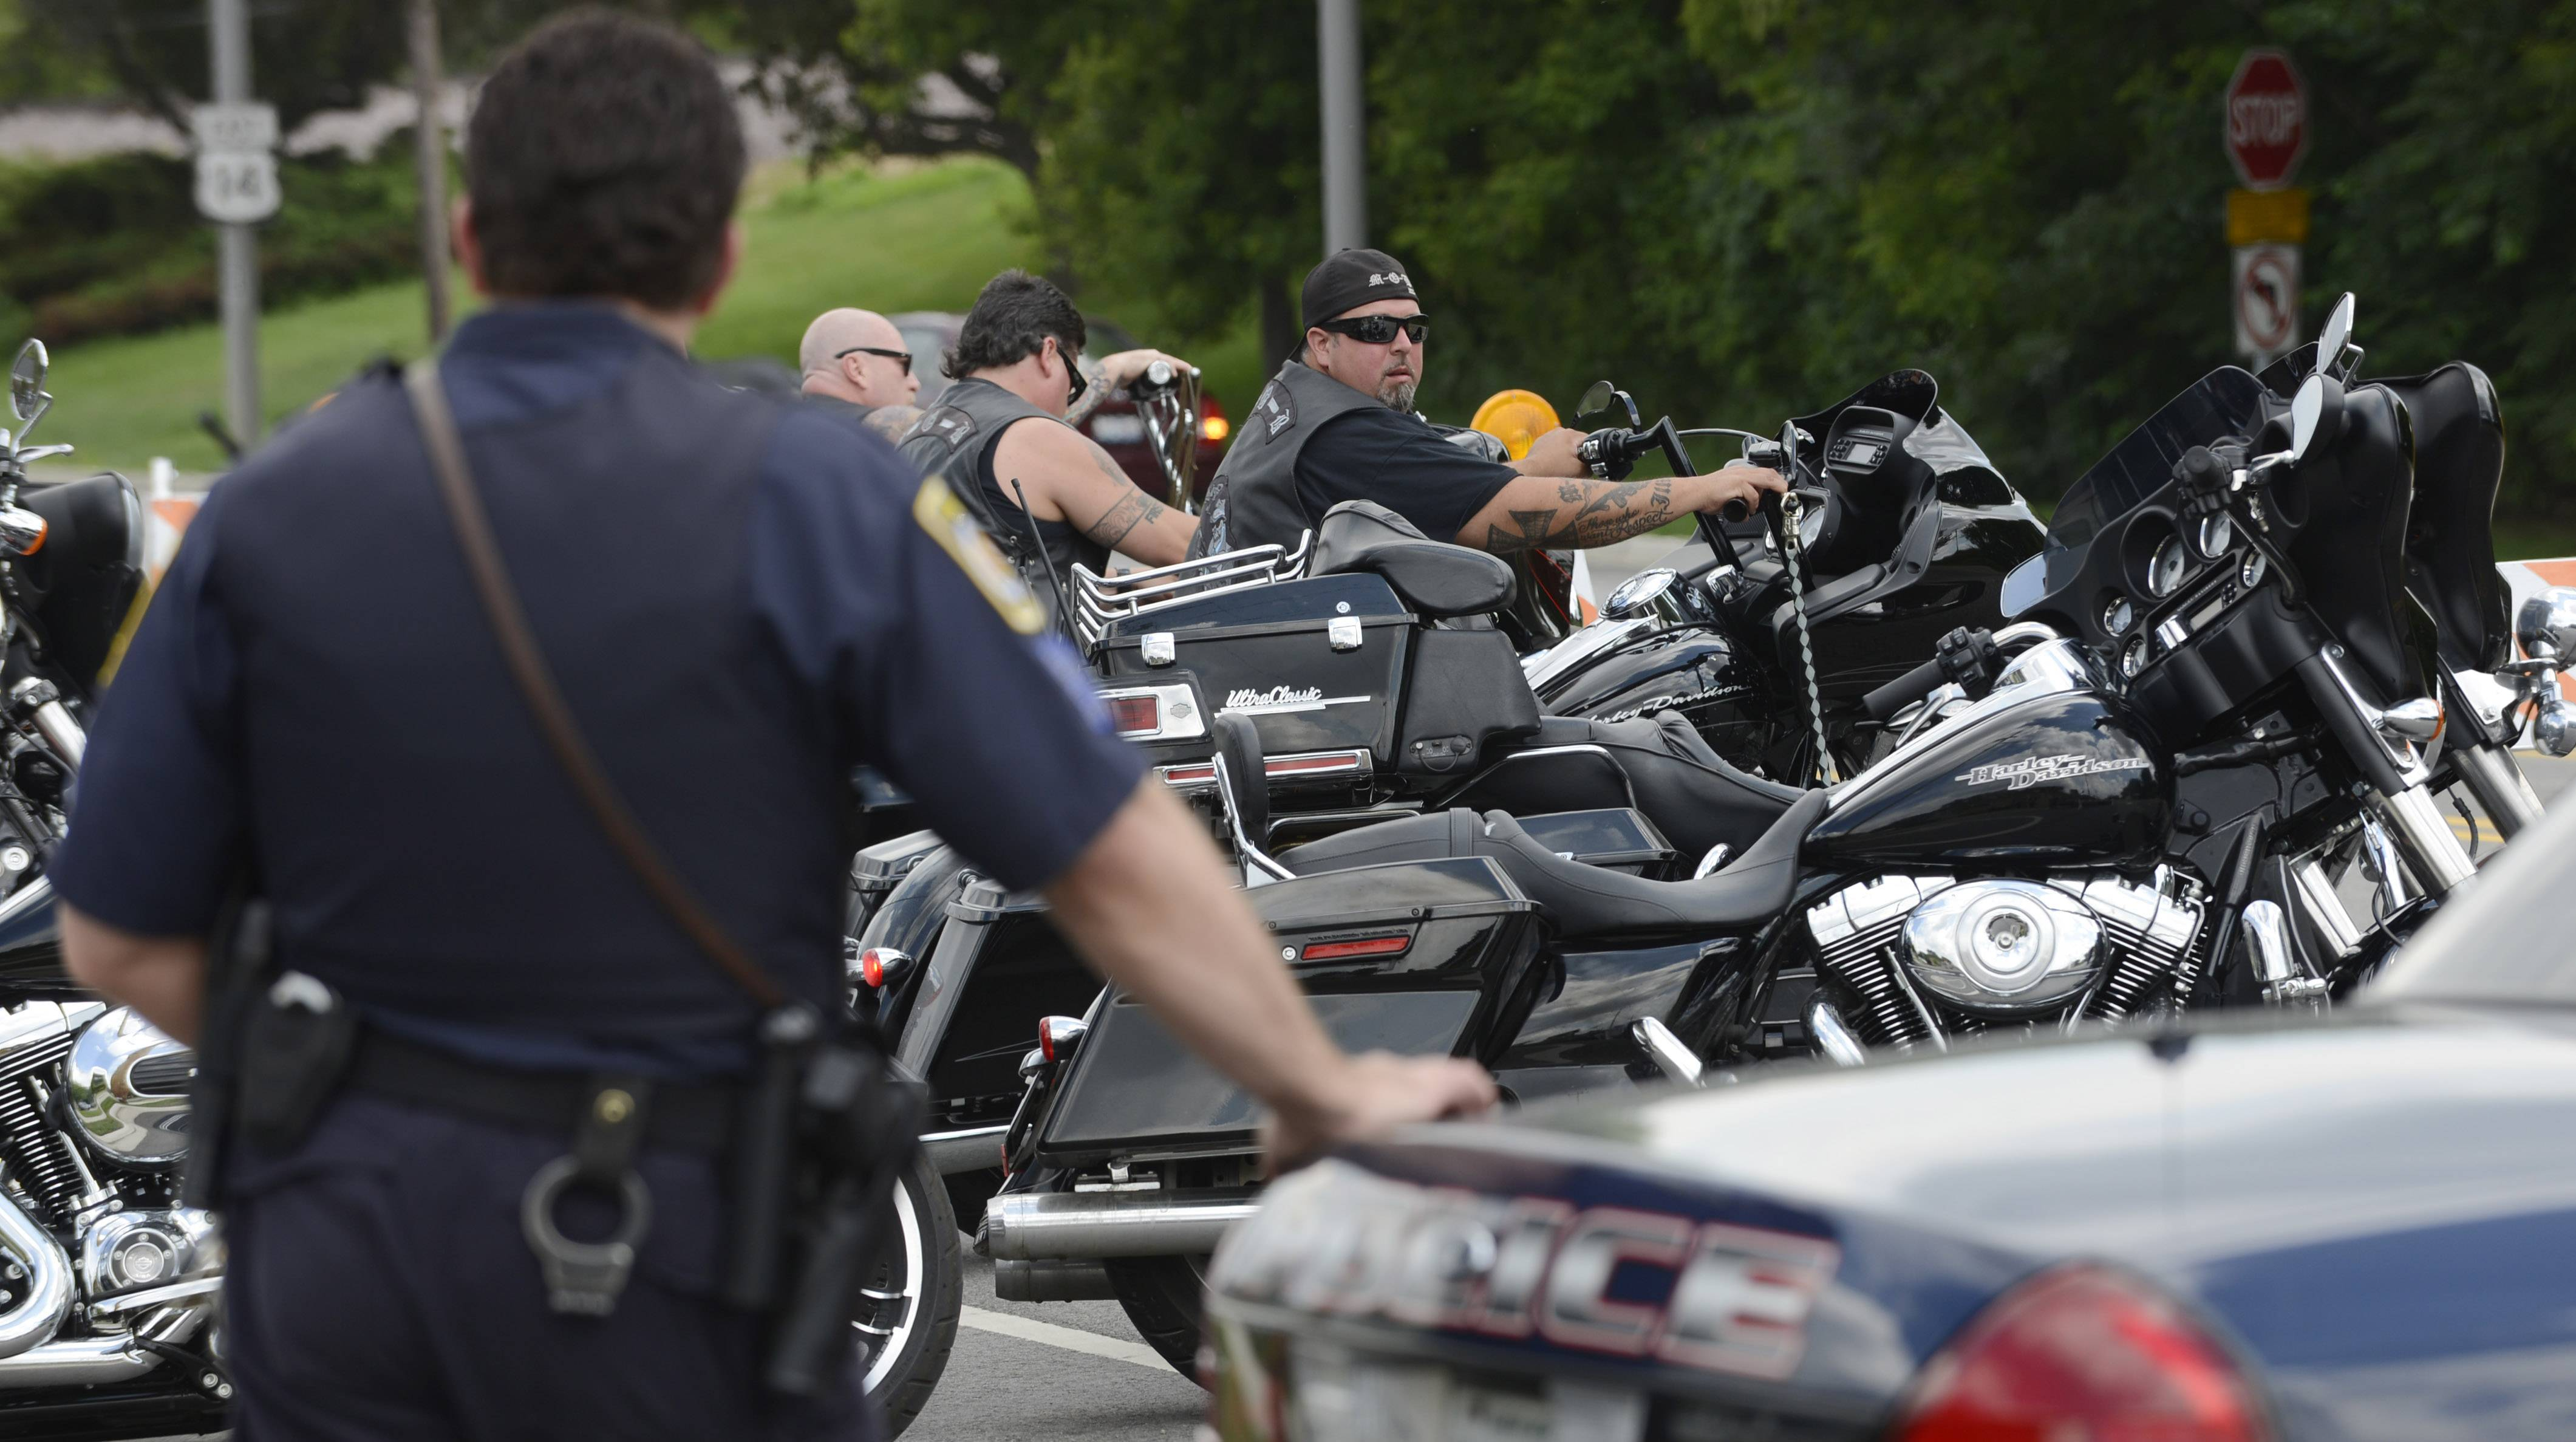 An Arlington Heights police officer stands by his car Saturday as members of the Outlaws motorcycle club arrive for the wake for Douglas Peters.